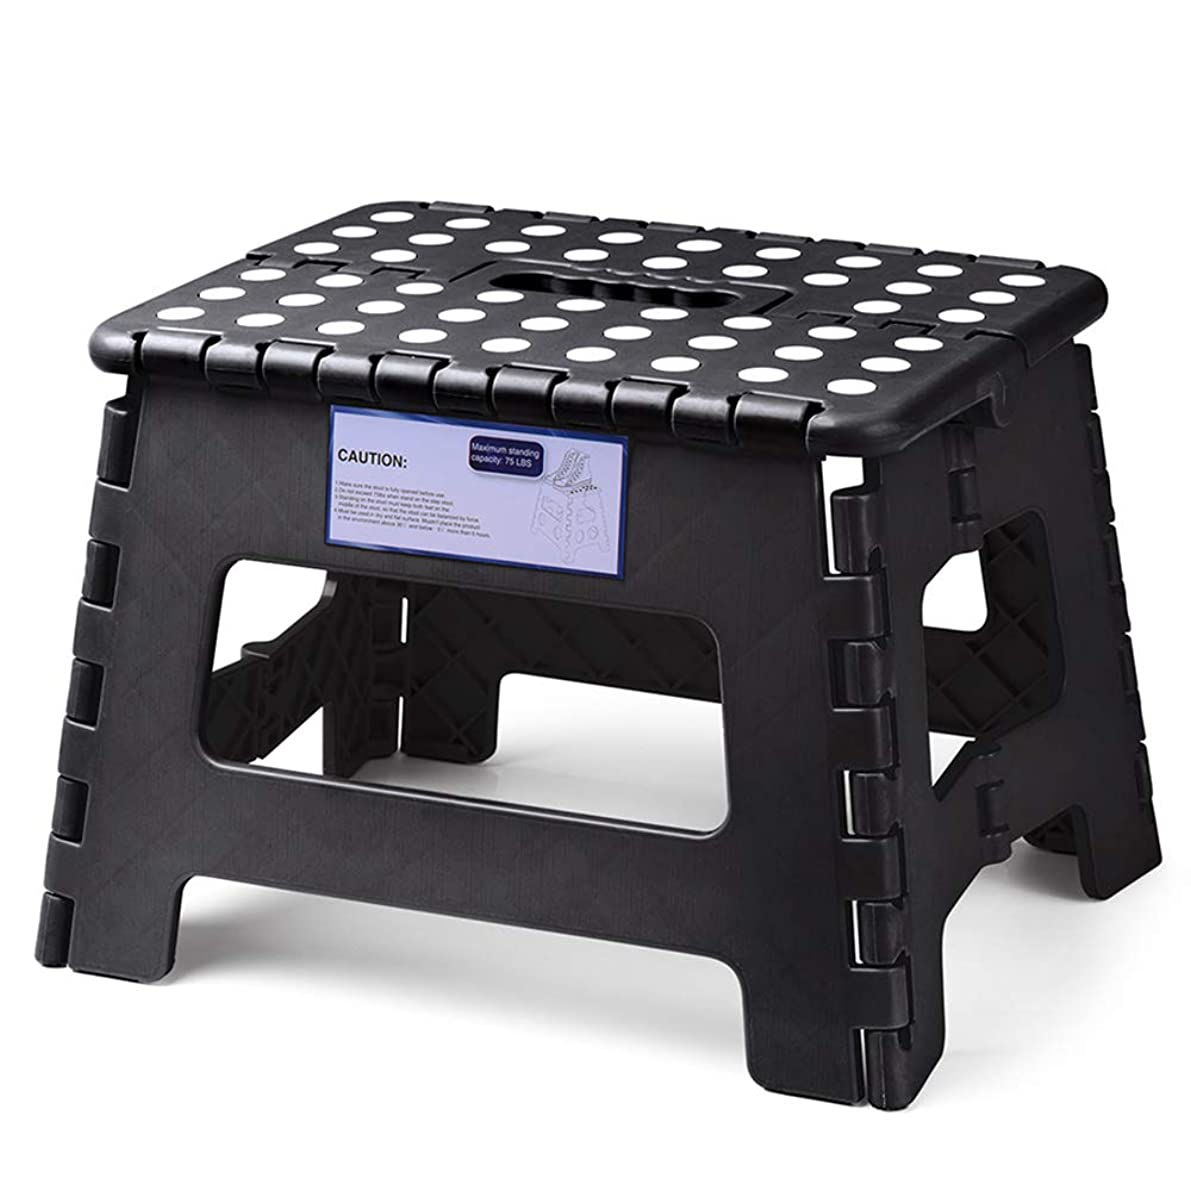 Acko Folding Step Stool Lightweight Plastic Step Stool,9 inch Foldable Step Stool for Kids and Adults,Non Slip Folding Stools for Kitchen Bathroom Bedroom (Black)